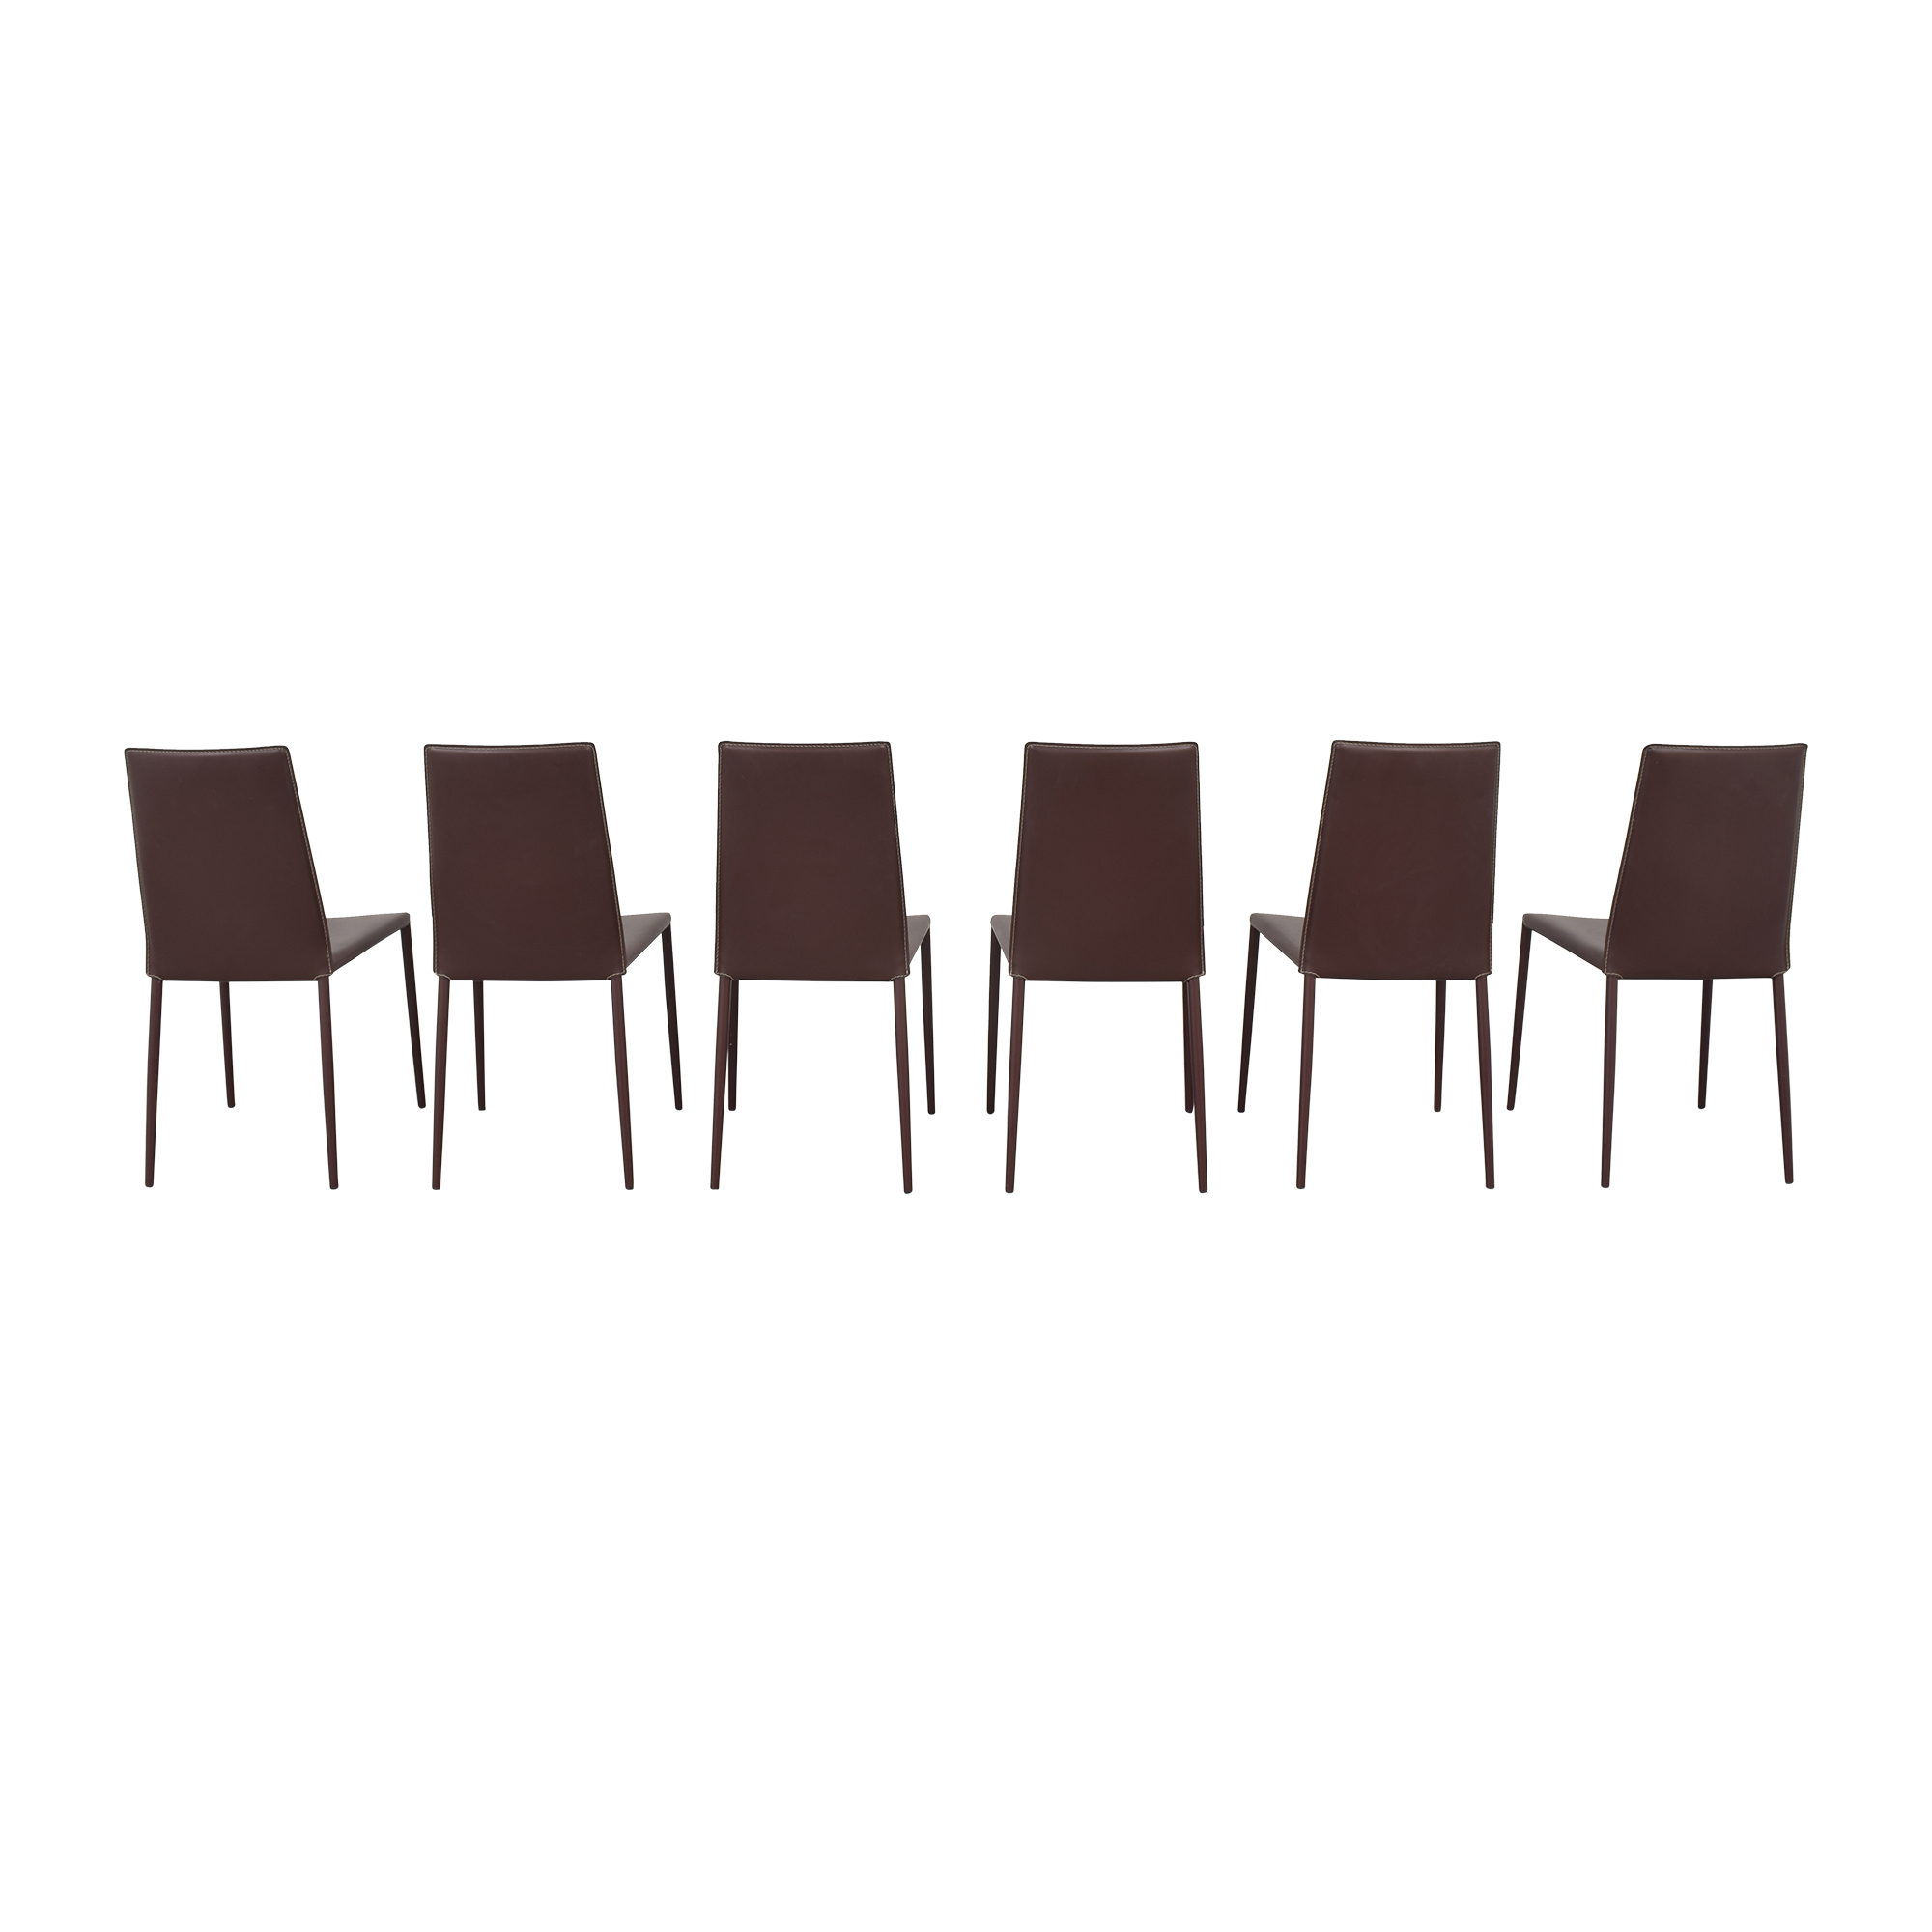 Calligaris Calligaris Boheme by Connubia Dining Chairs dark brown